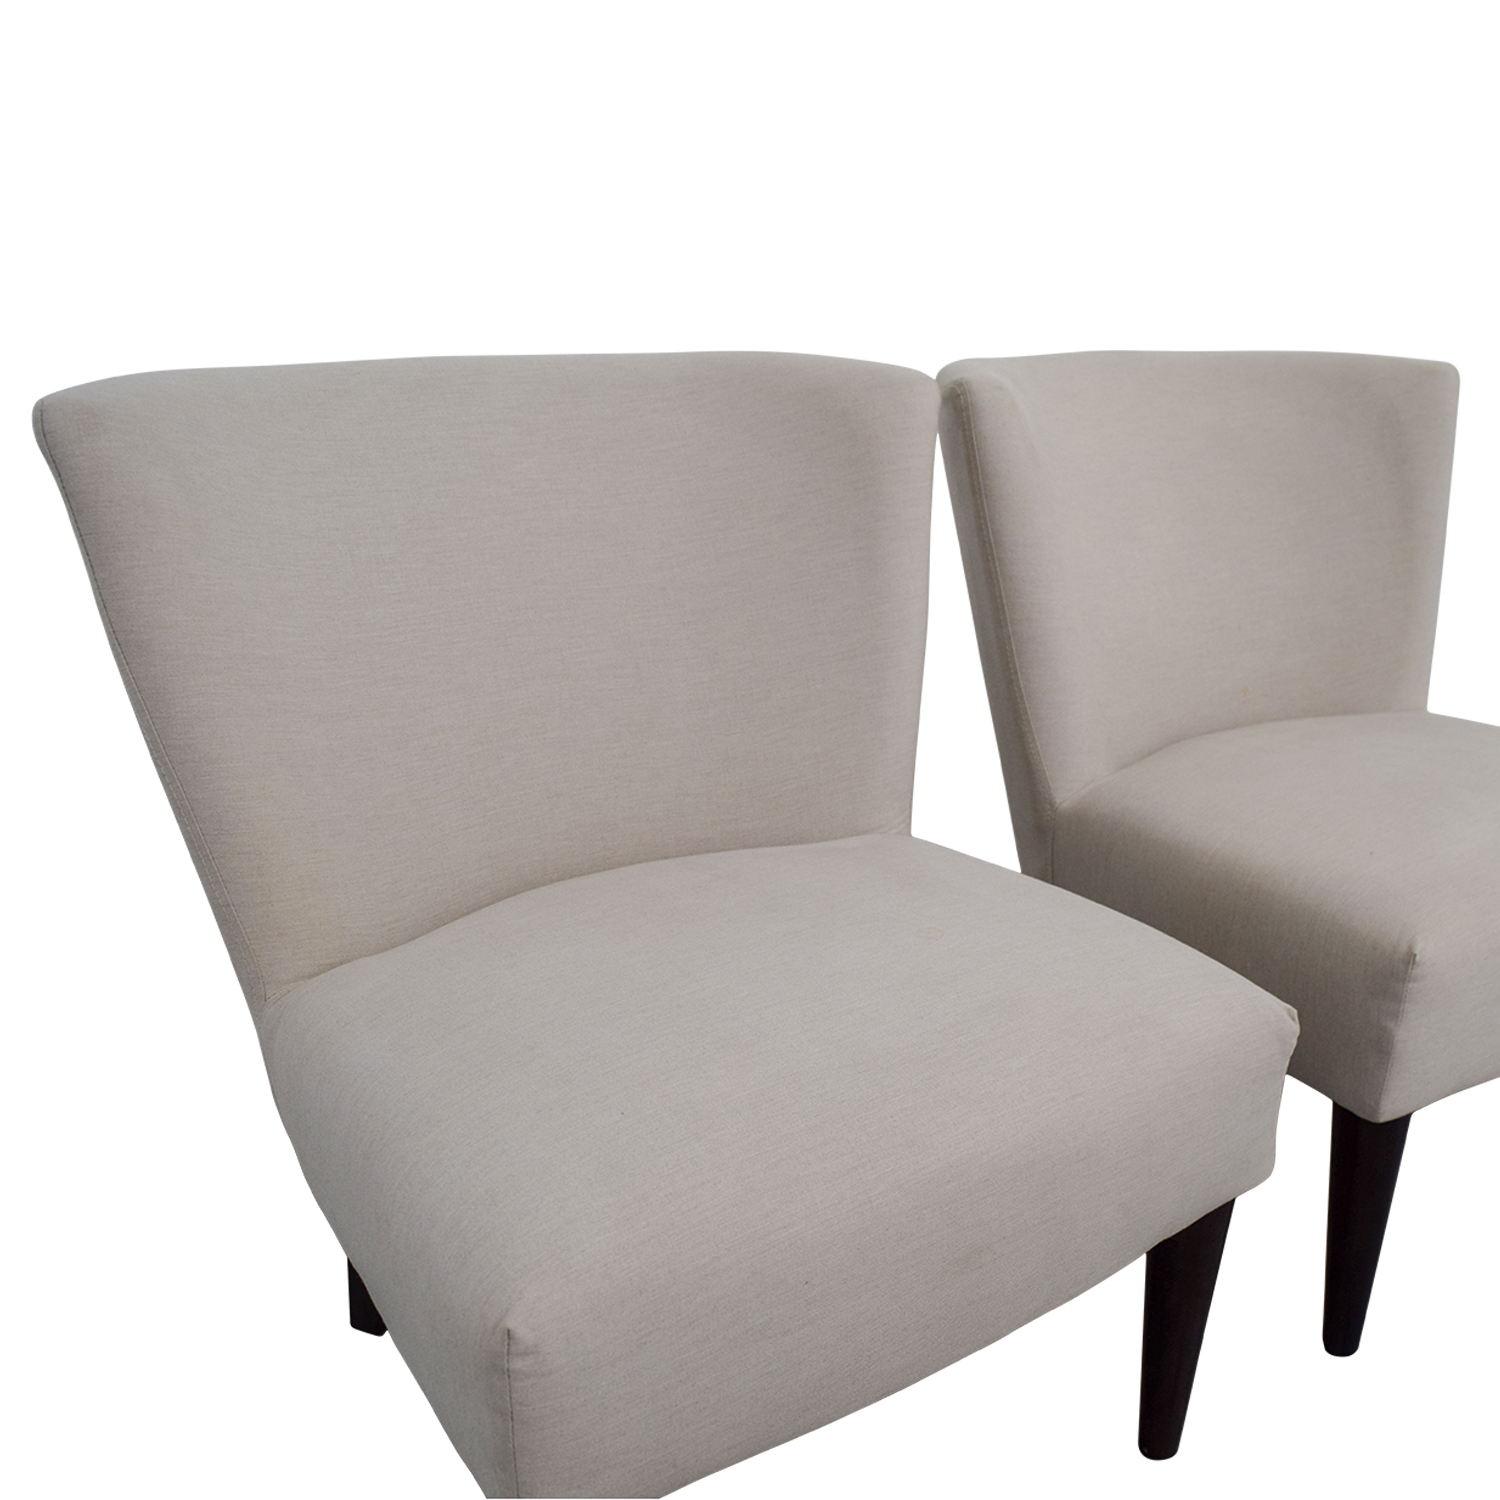 West Elm West Elm Retro Cream Chairs Chairs